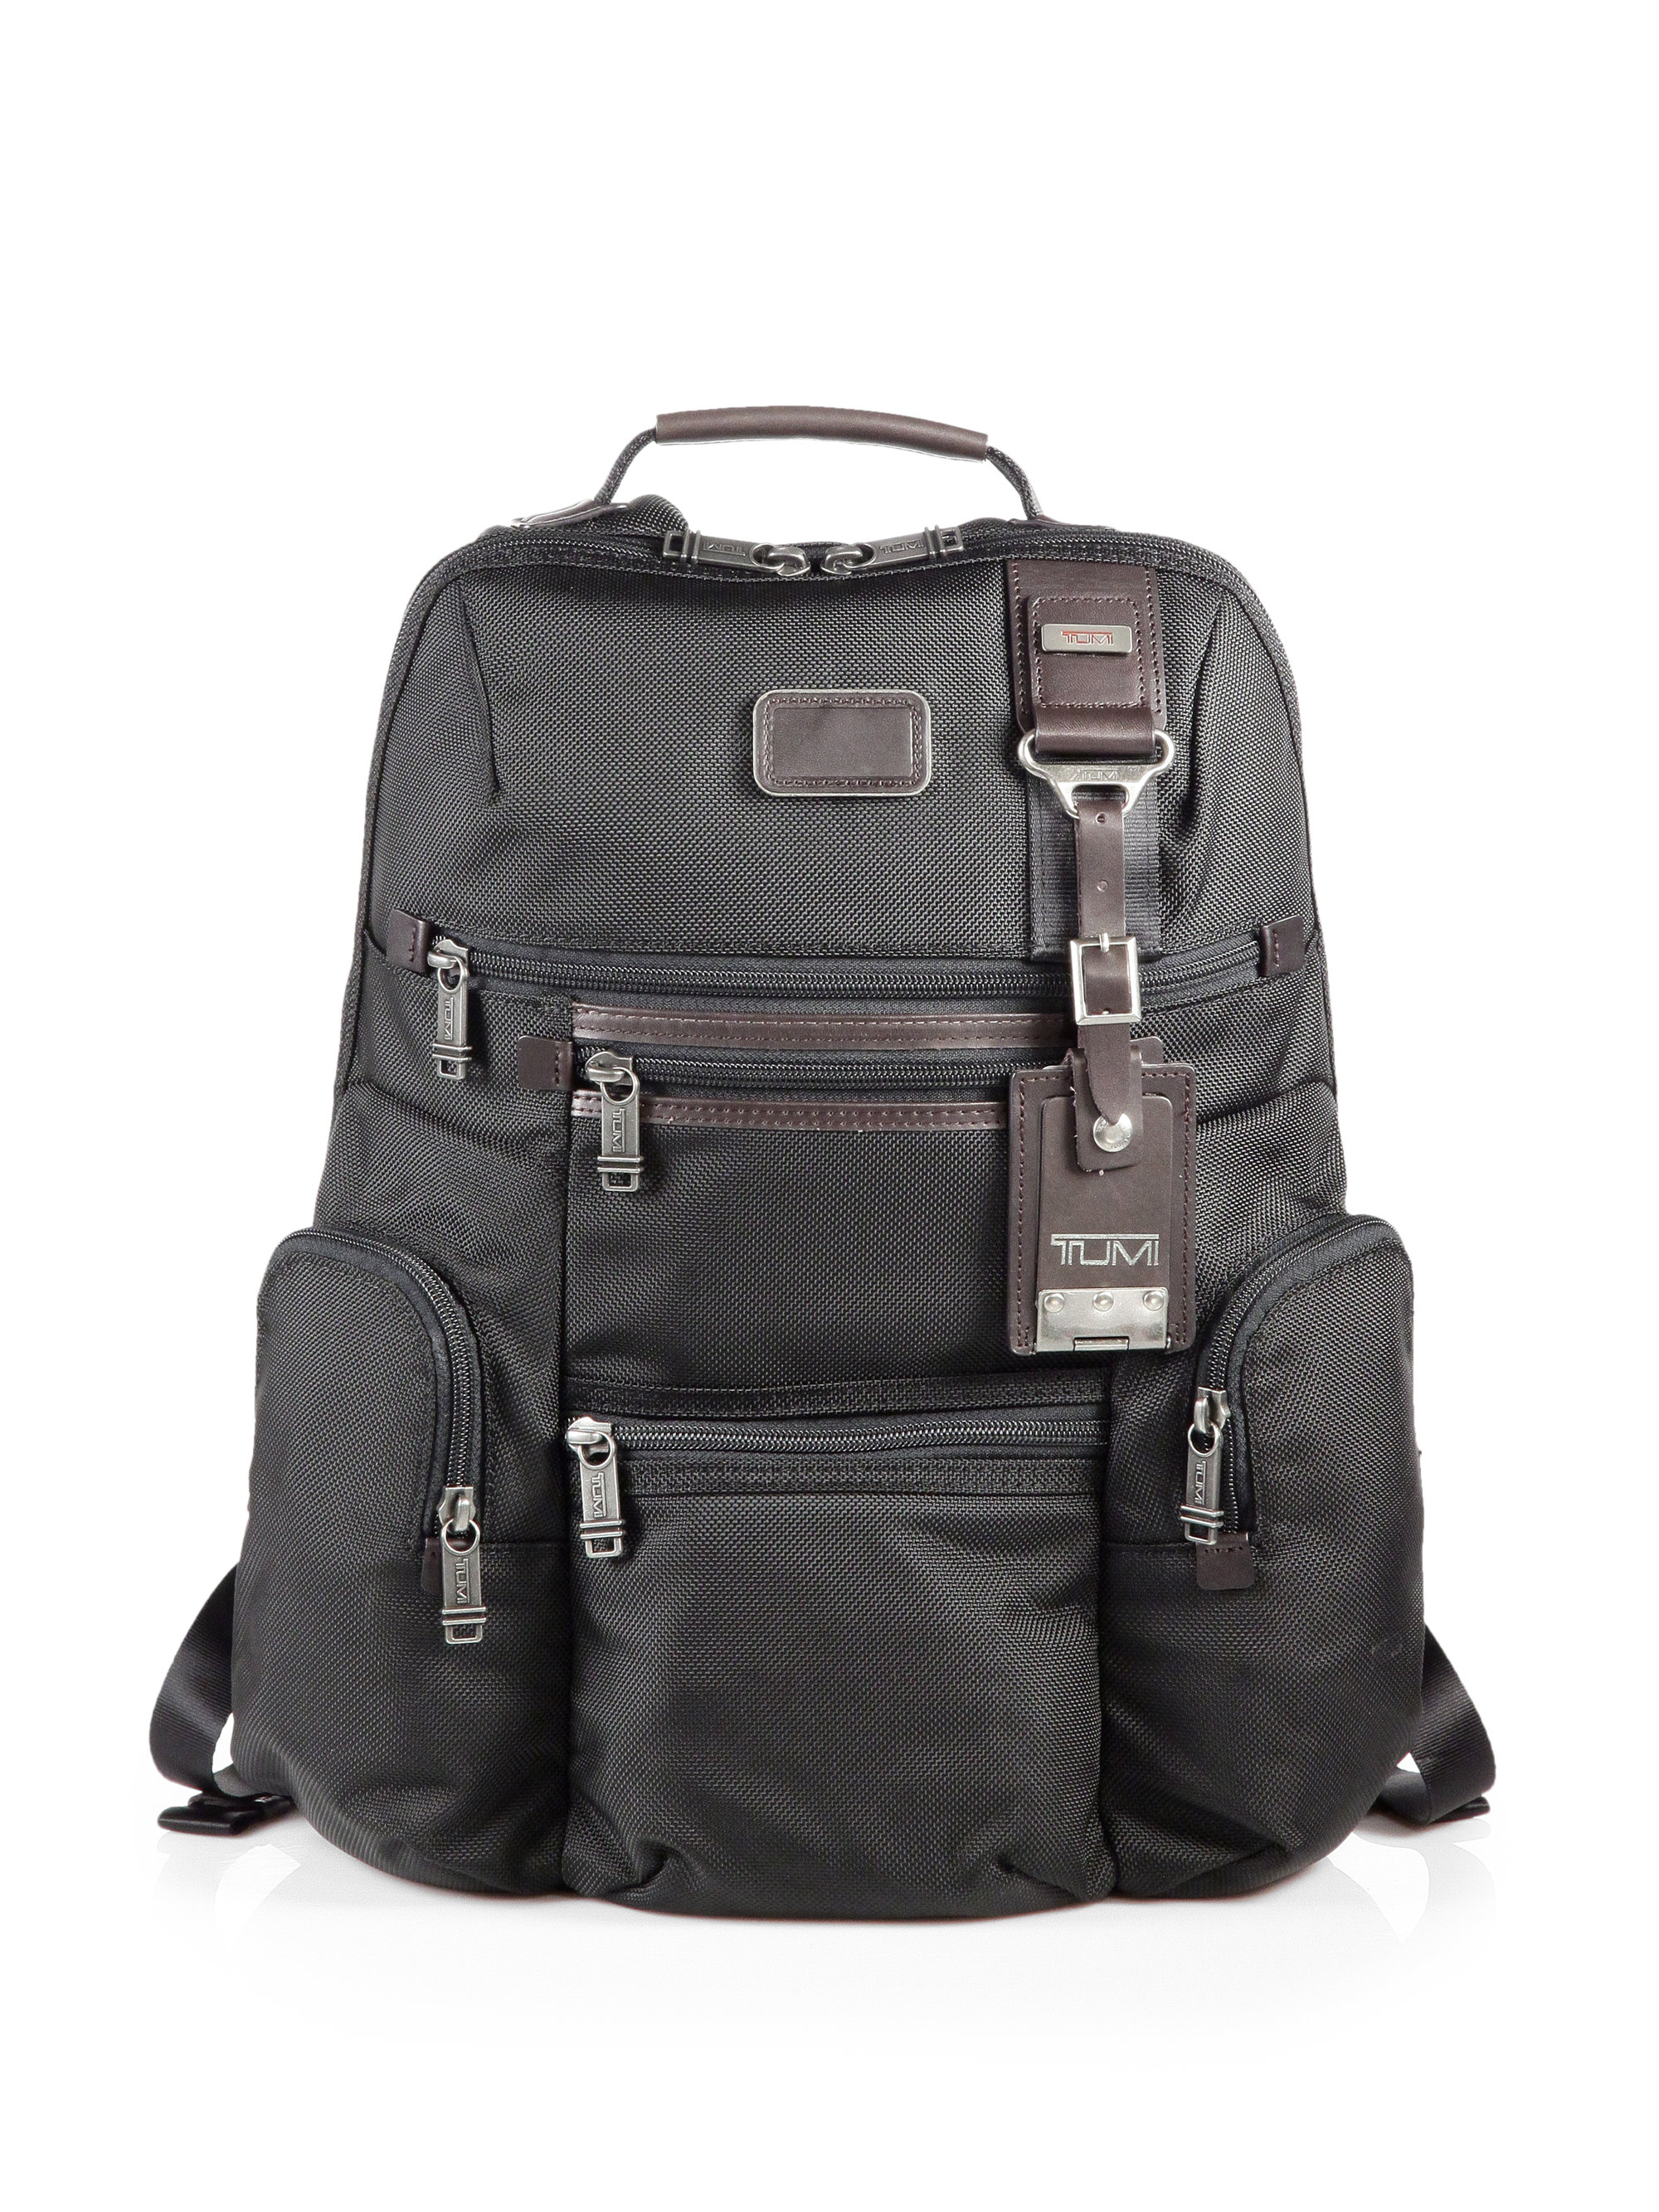 Tumi Alpha Bravo Knox Backpack In Black For Men Lyst